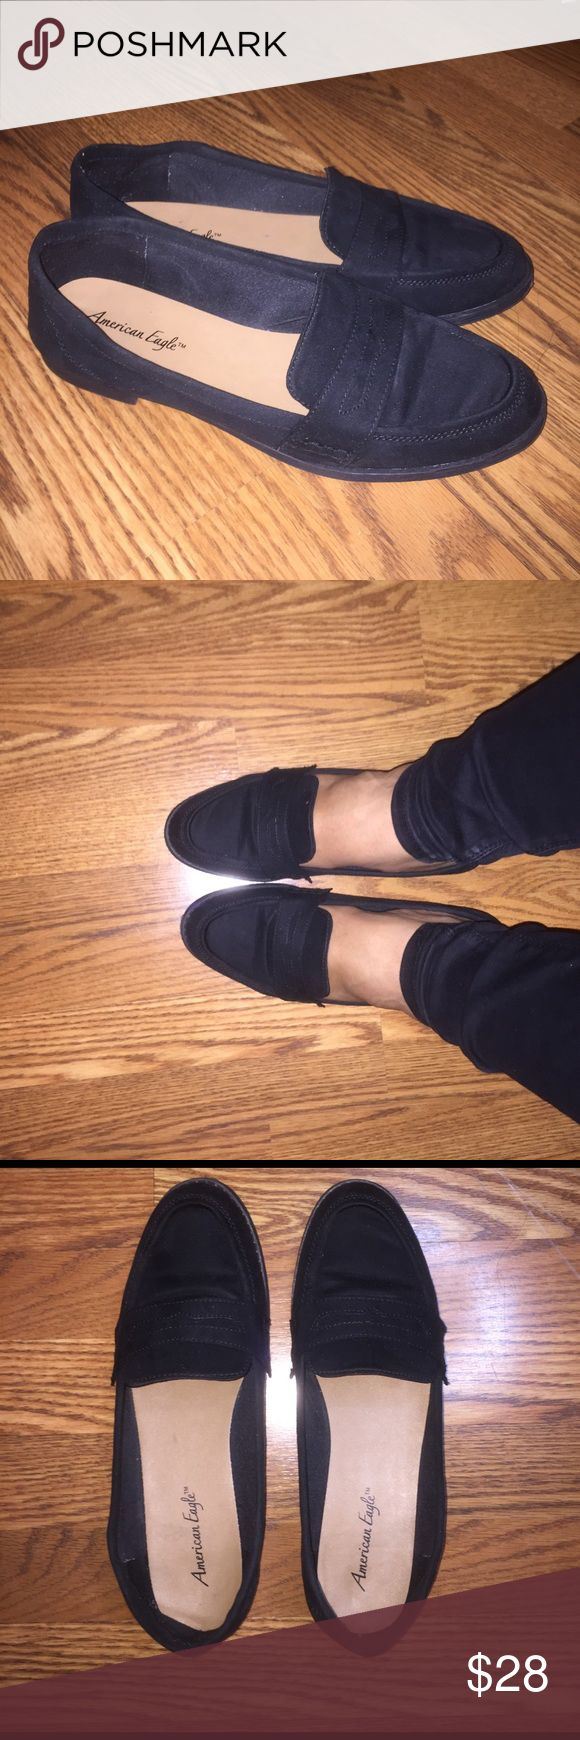 Black Suede Loafers Moccasins Size 12 Business Perfect shoes for the stylish and classy girl! Hard to find cute business loafers in a size 12. Only used once all day, so very minor wear. American Eagle by Payless Shoes Flats & Loafers